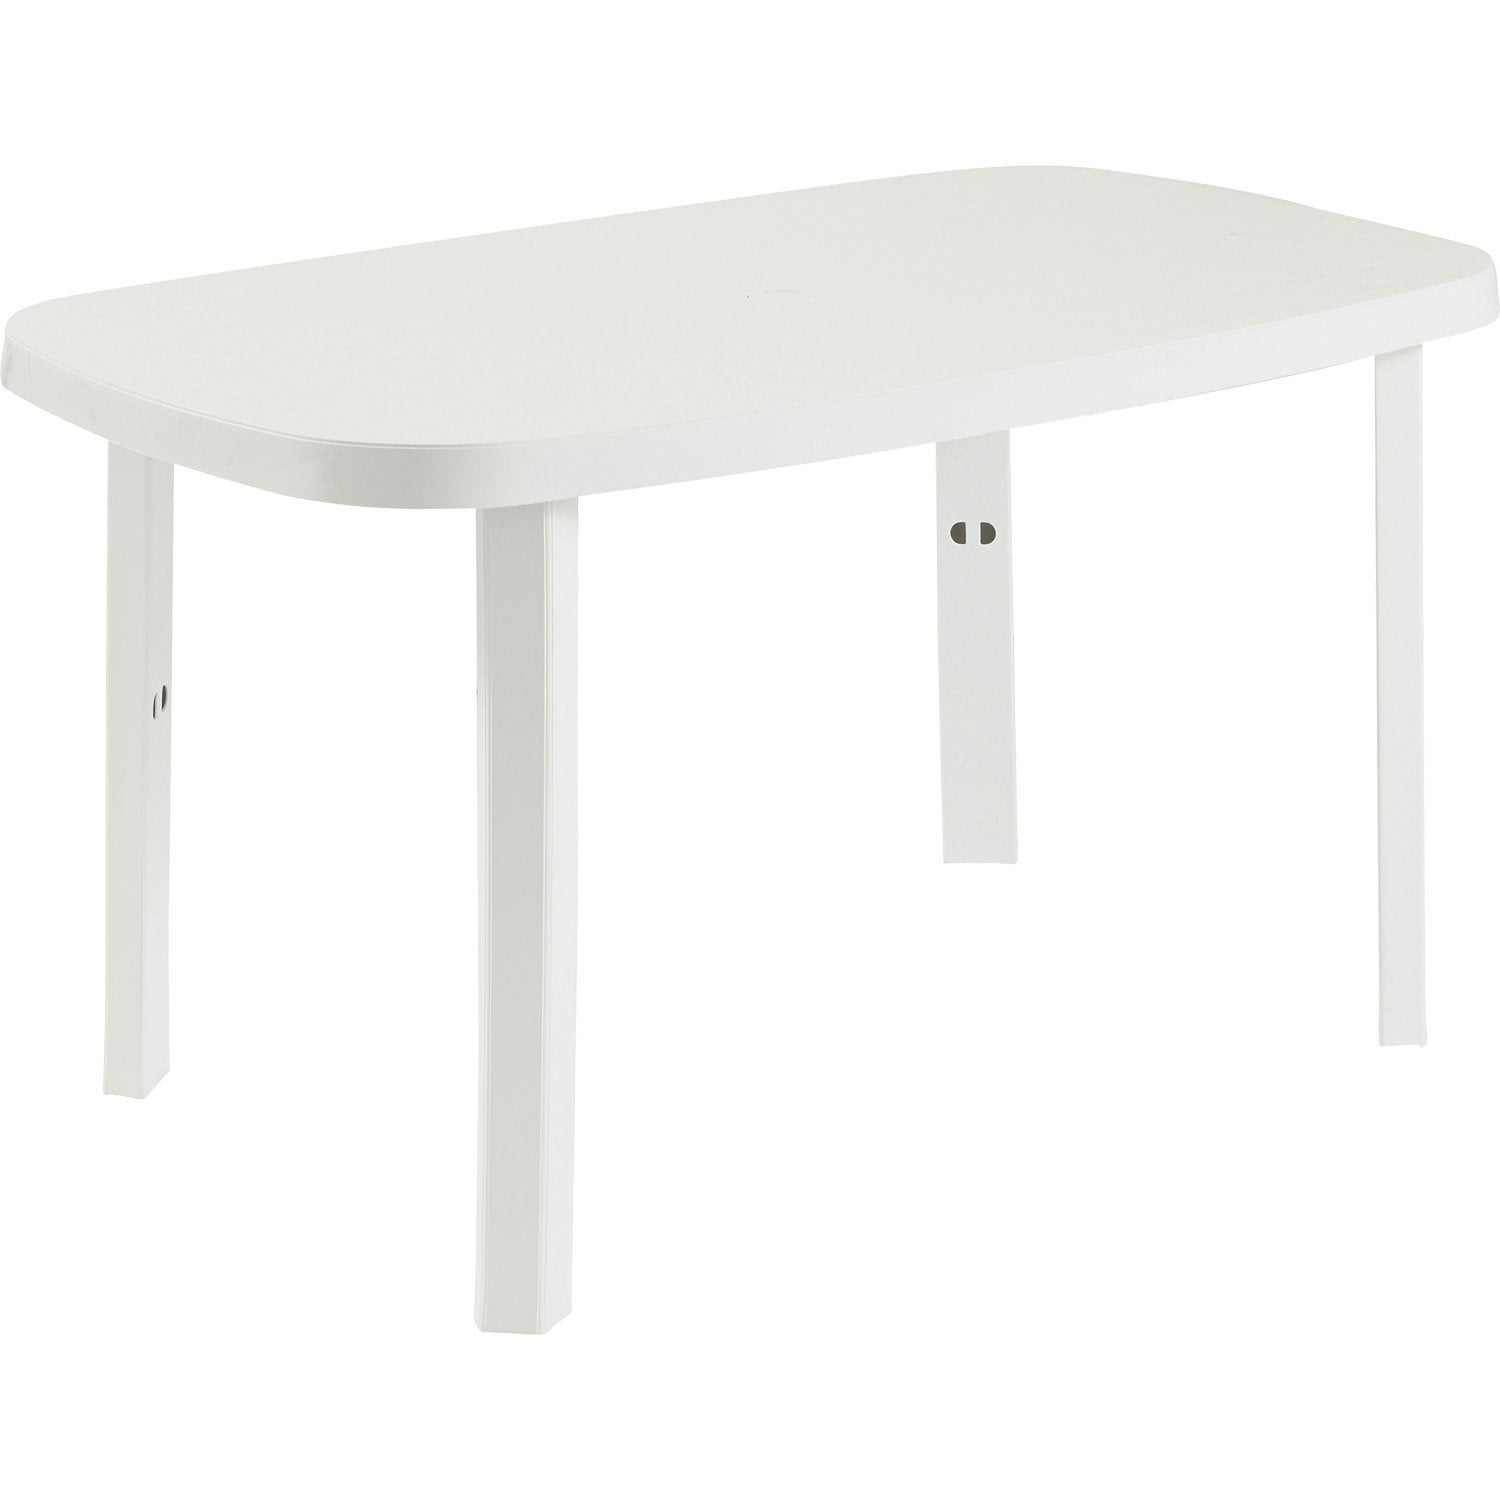 table de jardin otello ovale blanc 2 personnes leroy merlin. Black Bedroom Furniture Sets. Home Design Ideas